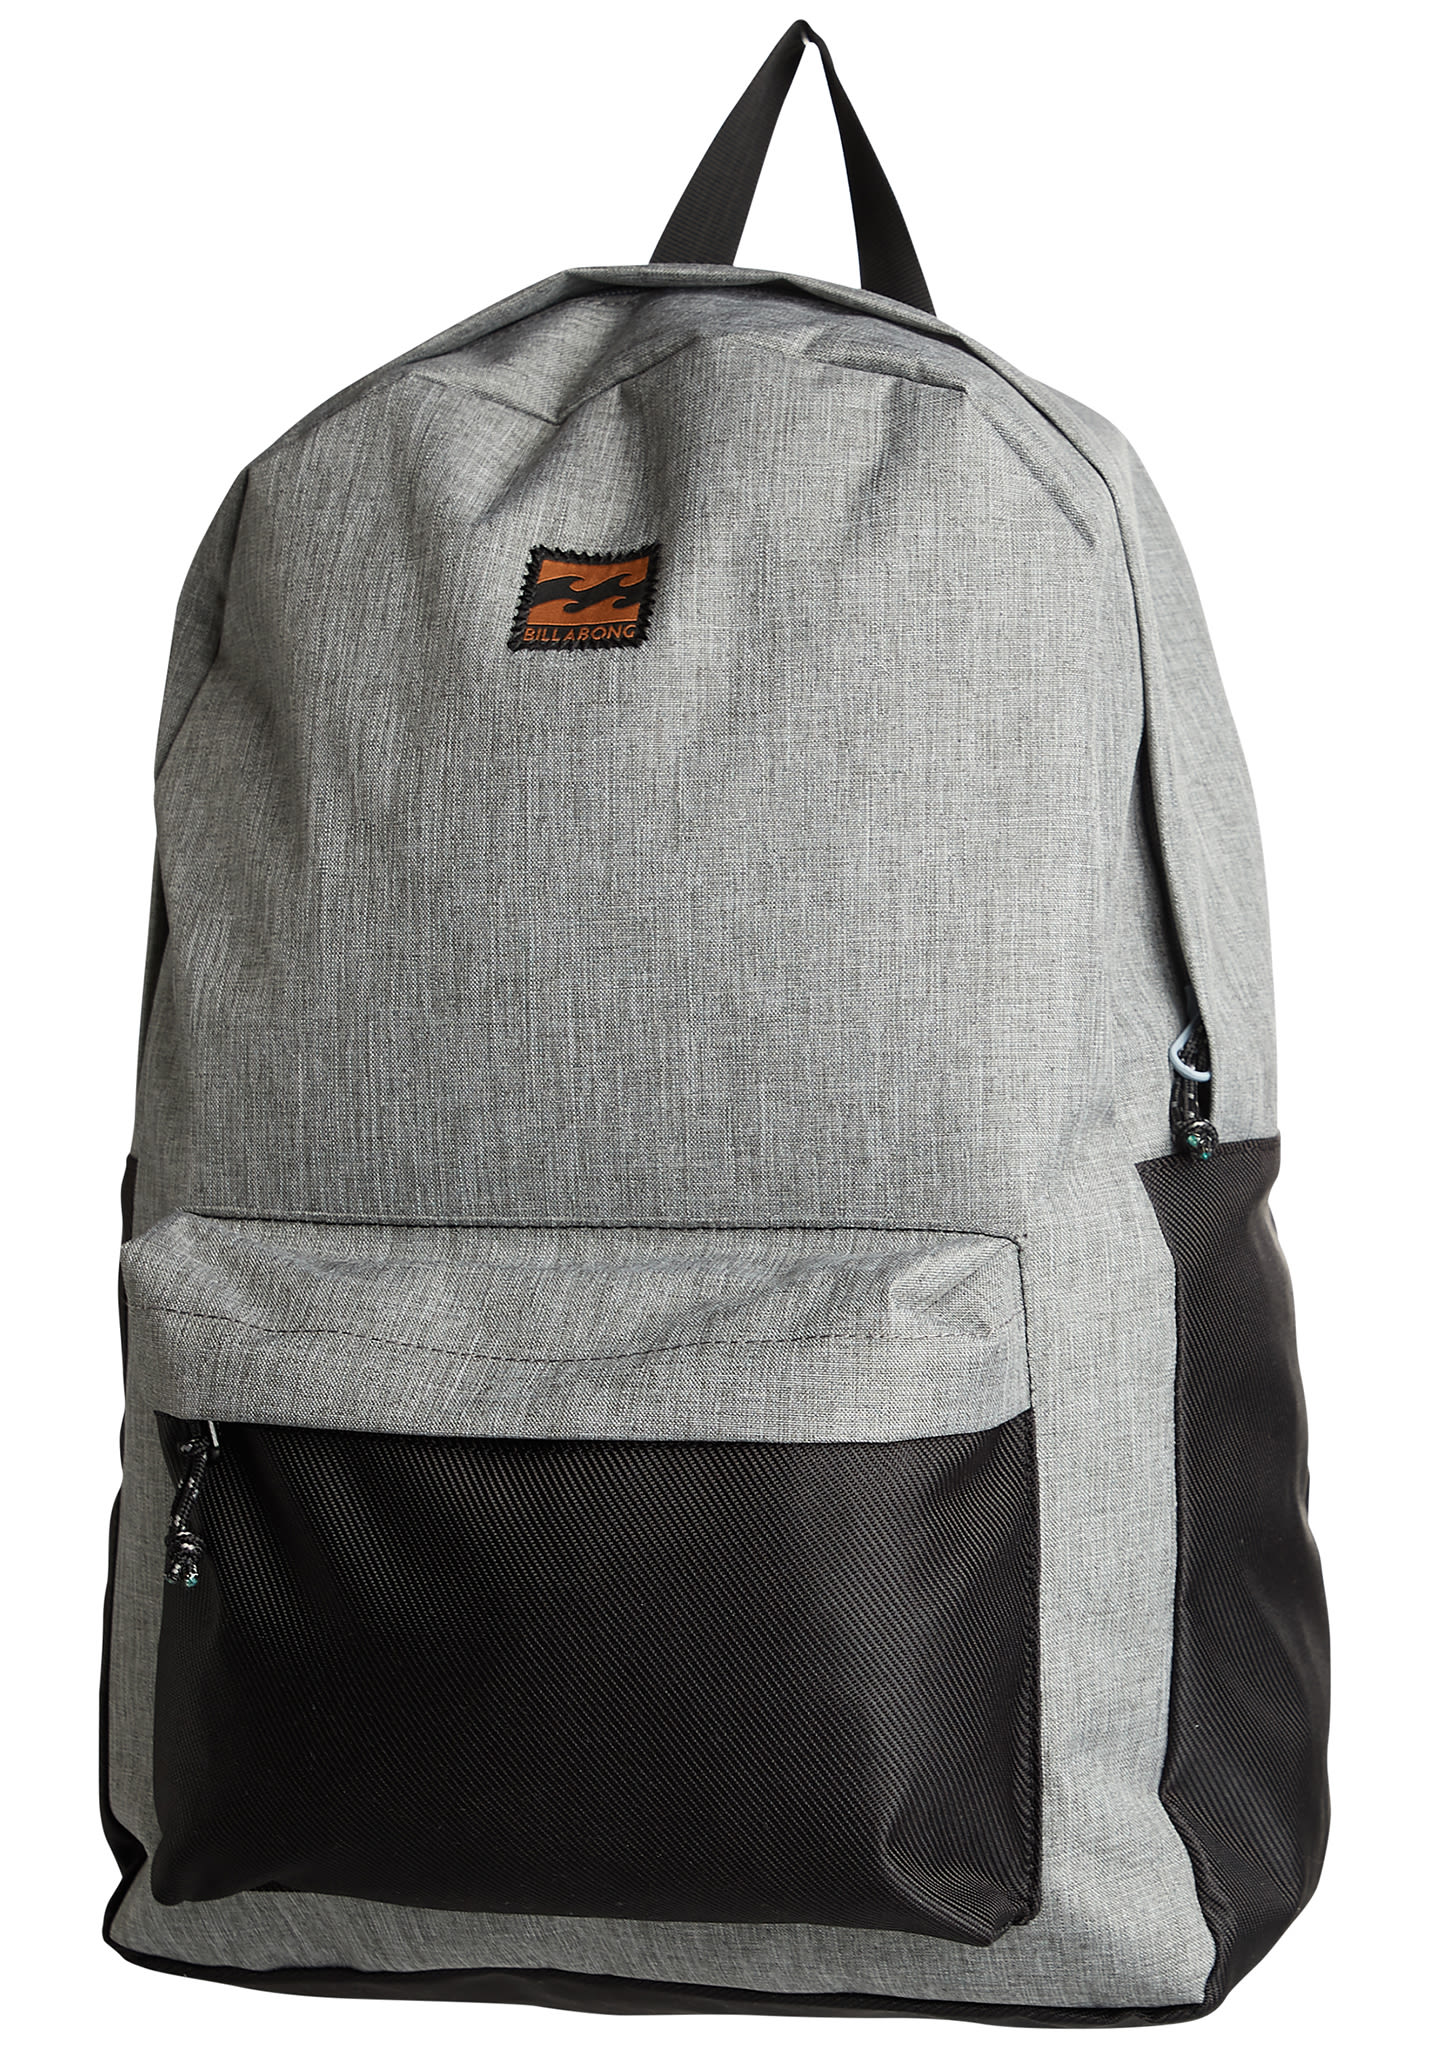 340974d9b90aa BILLABONG All Day 22L - Backpack - Grey - Planet Sports